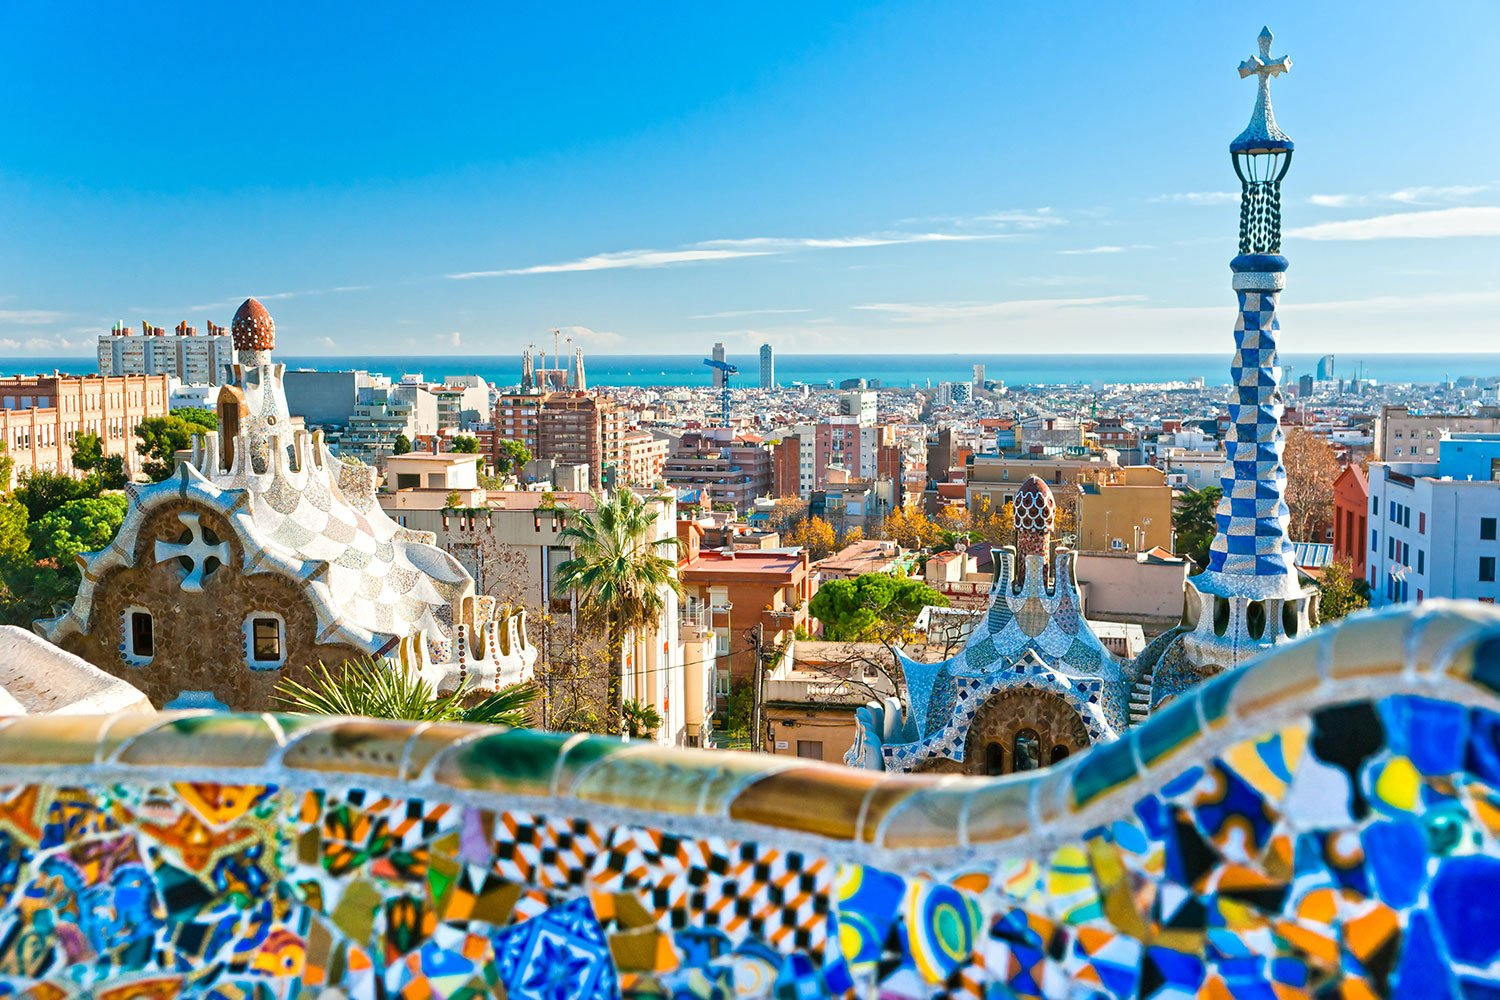 Urban landscape in Spain with a mosaic bridge in the foreground